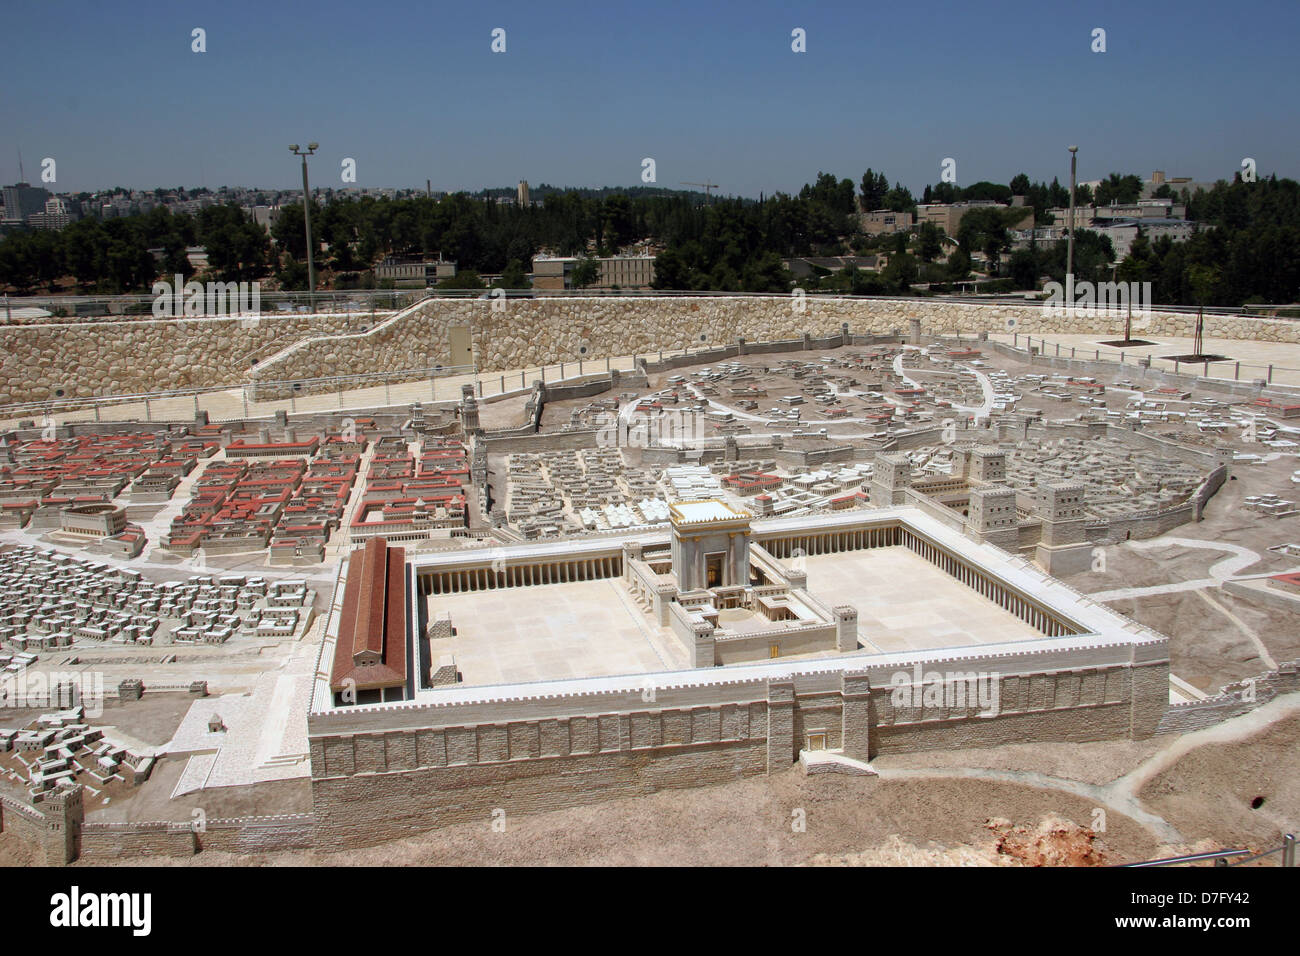 Reconstructed 2nd Temple as part of Model Of Ancient Jerusalem, exhibited at the Israel museum - Stock Image